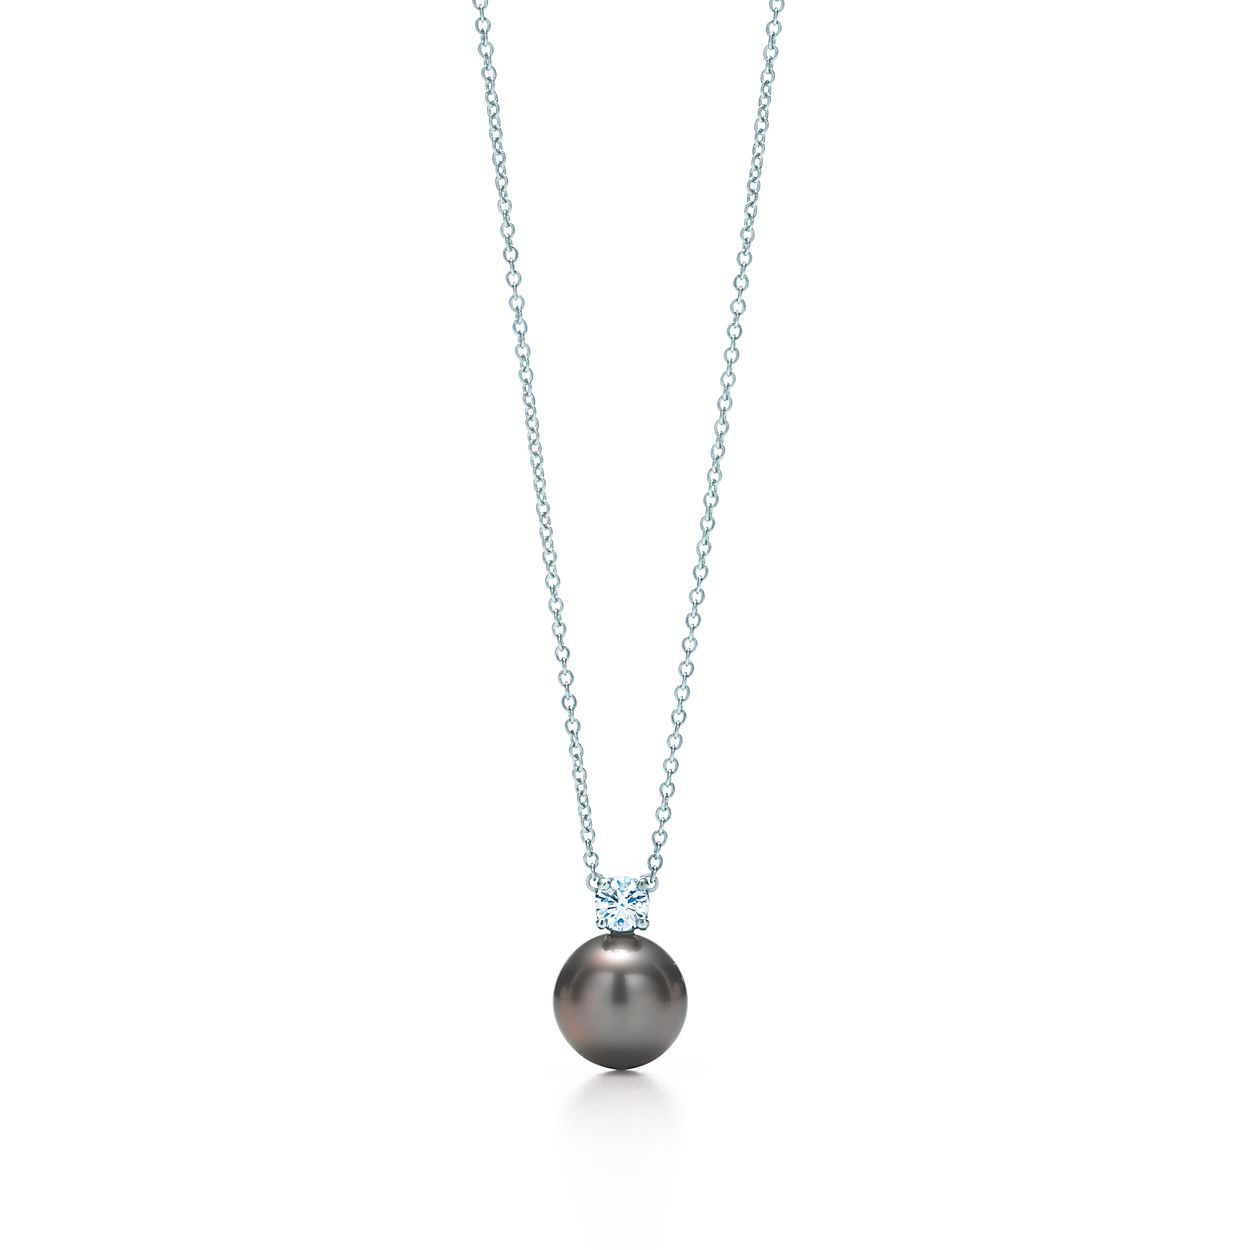 Pendant in 18k white gold with tahitian pearls and diamonds pearl pendant pearl pendant mozeypictures Choice Image